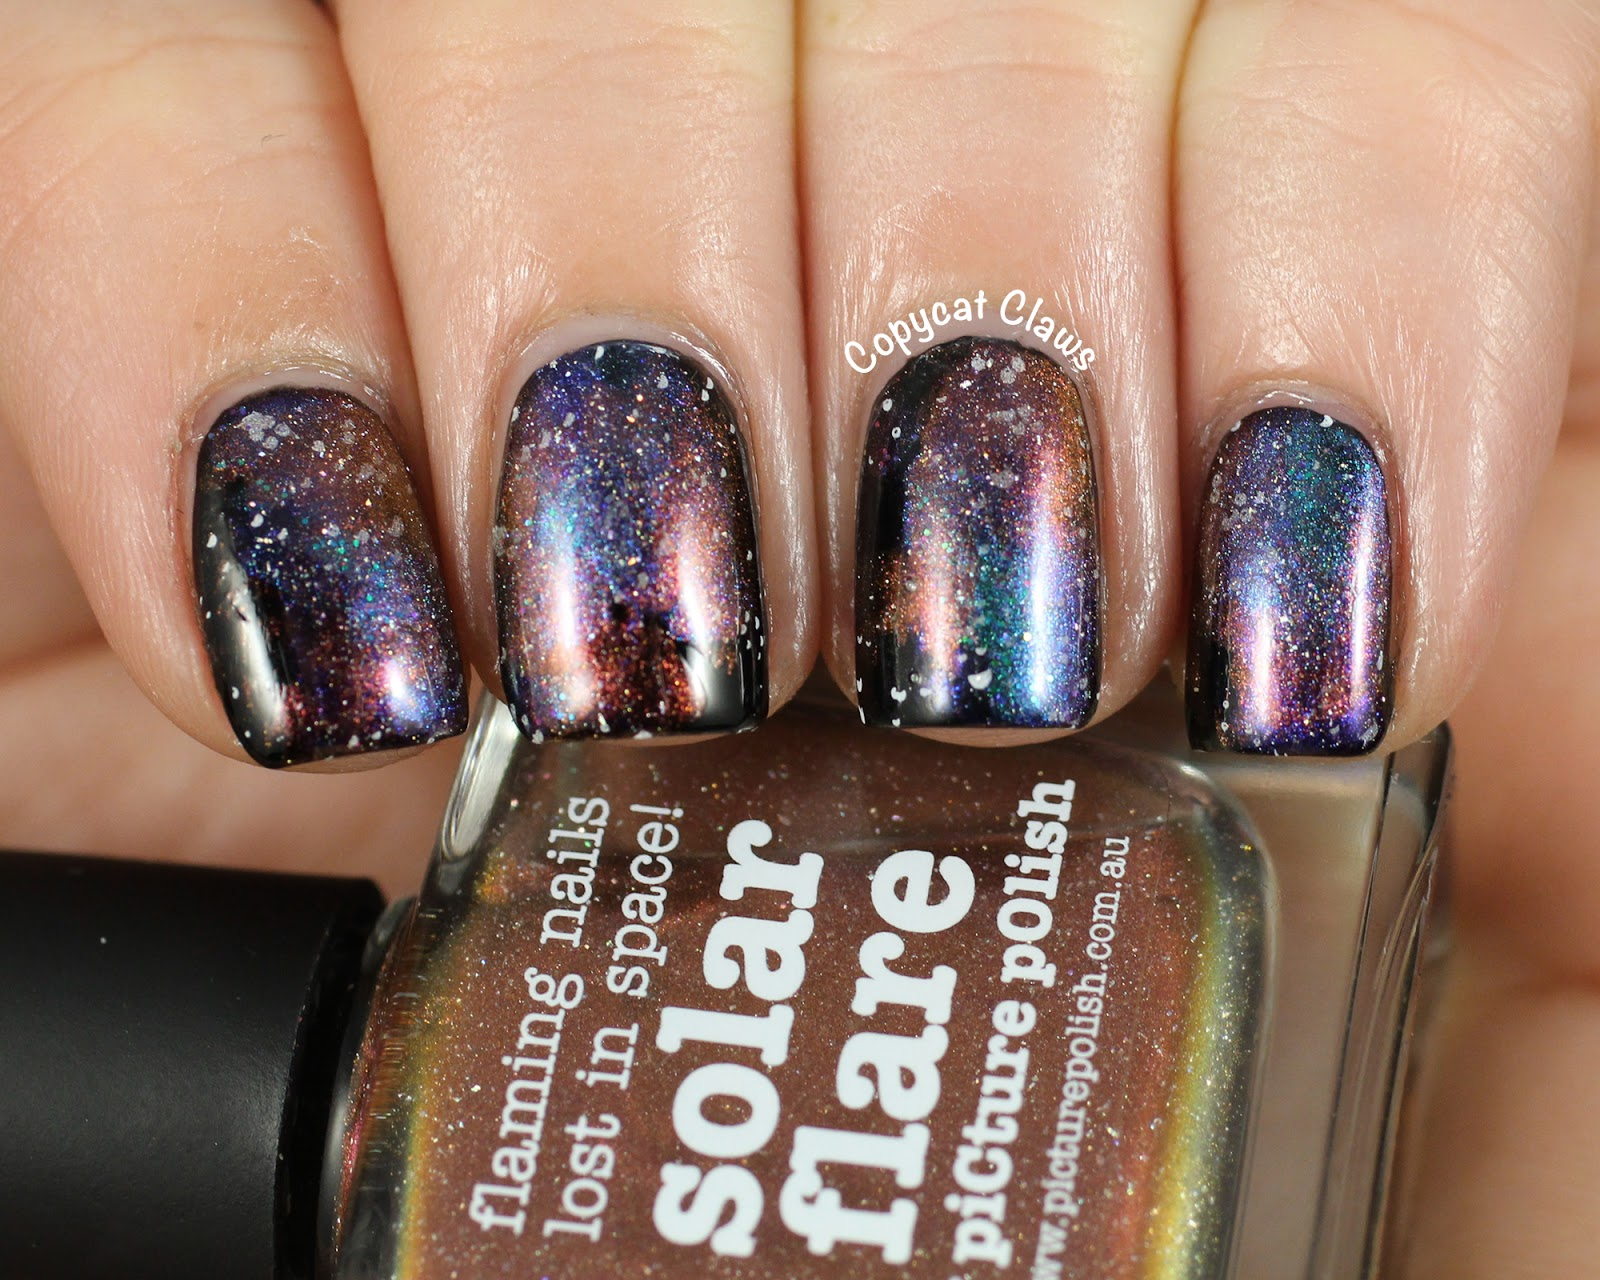 Copycat Claws: Easy Picture Polish Galaxy Nails